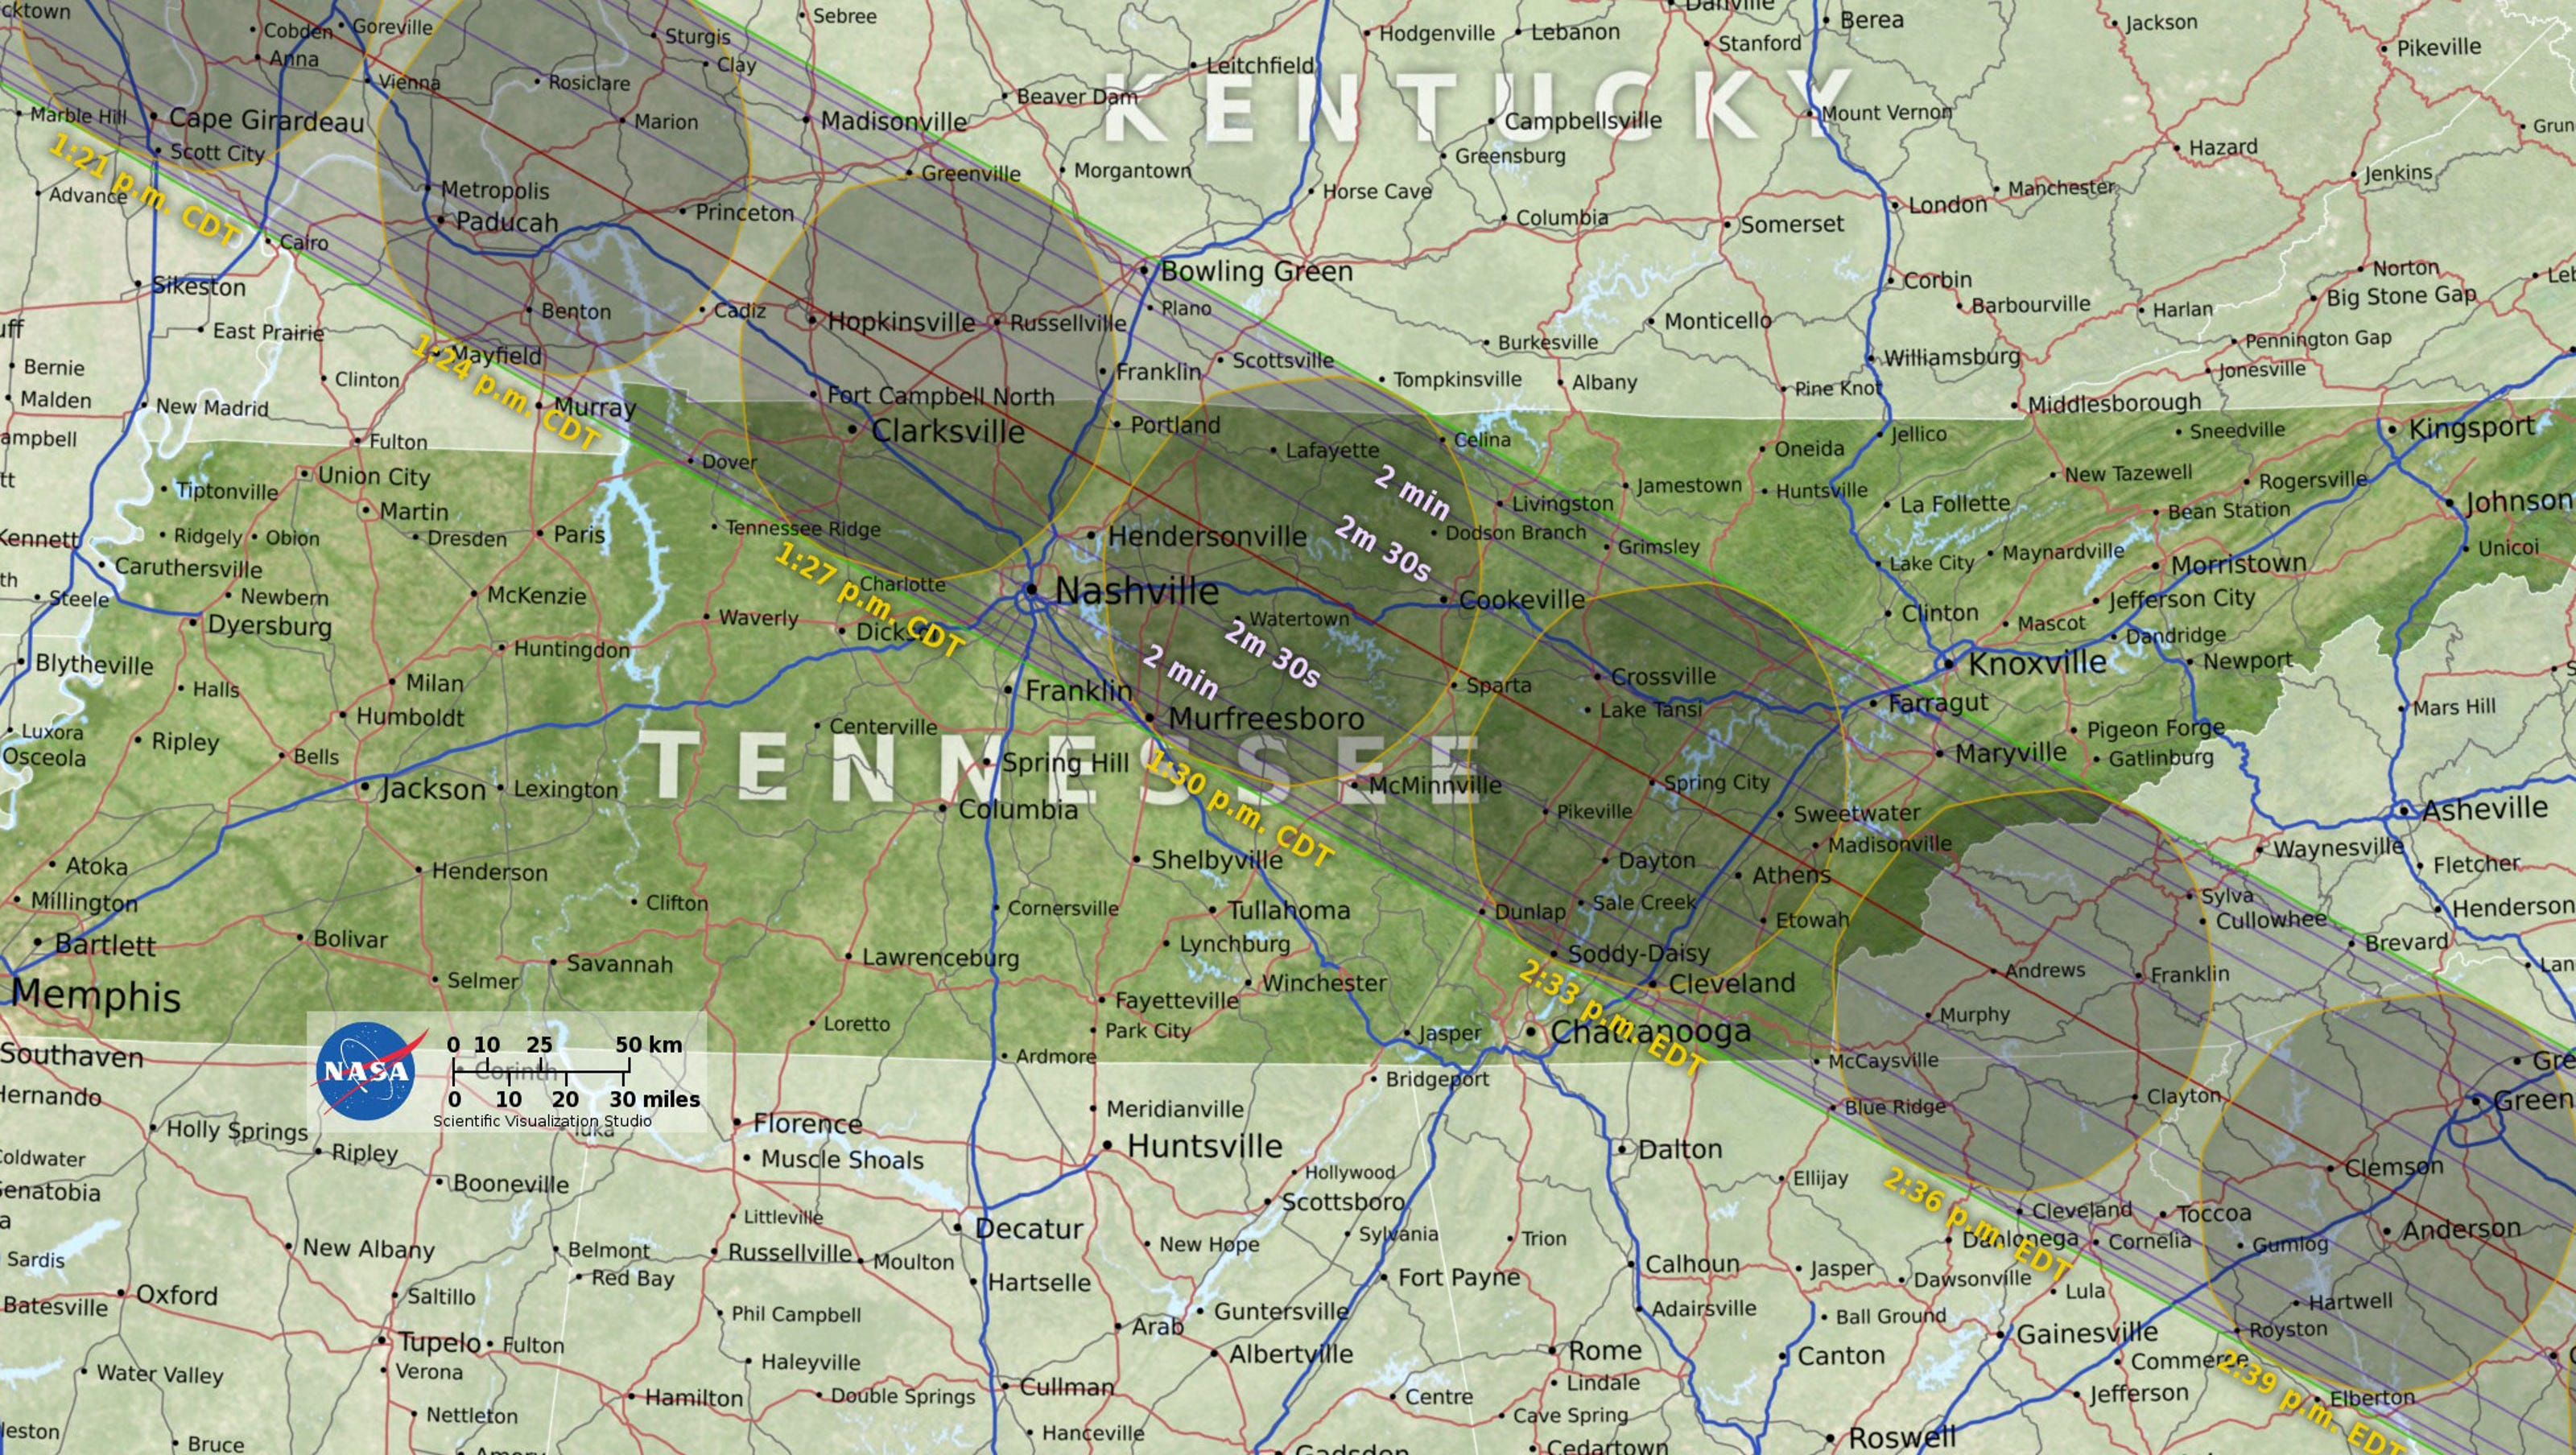 Solar Eclipse 2017 Map: The path of totality through Tennessee